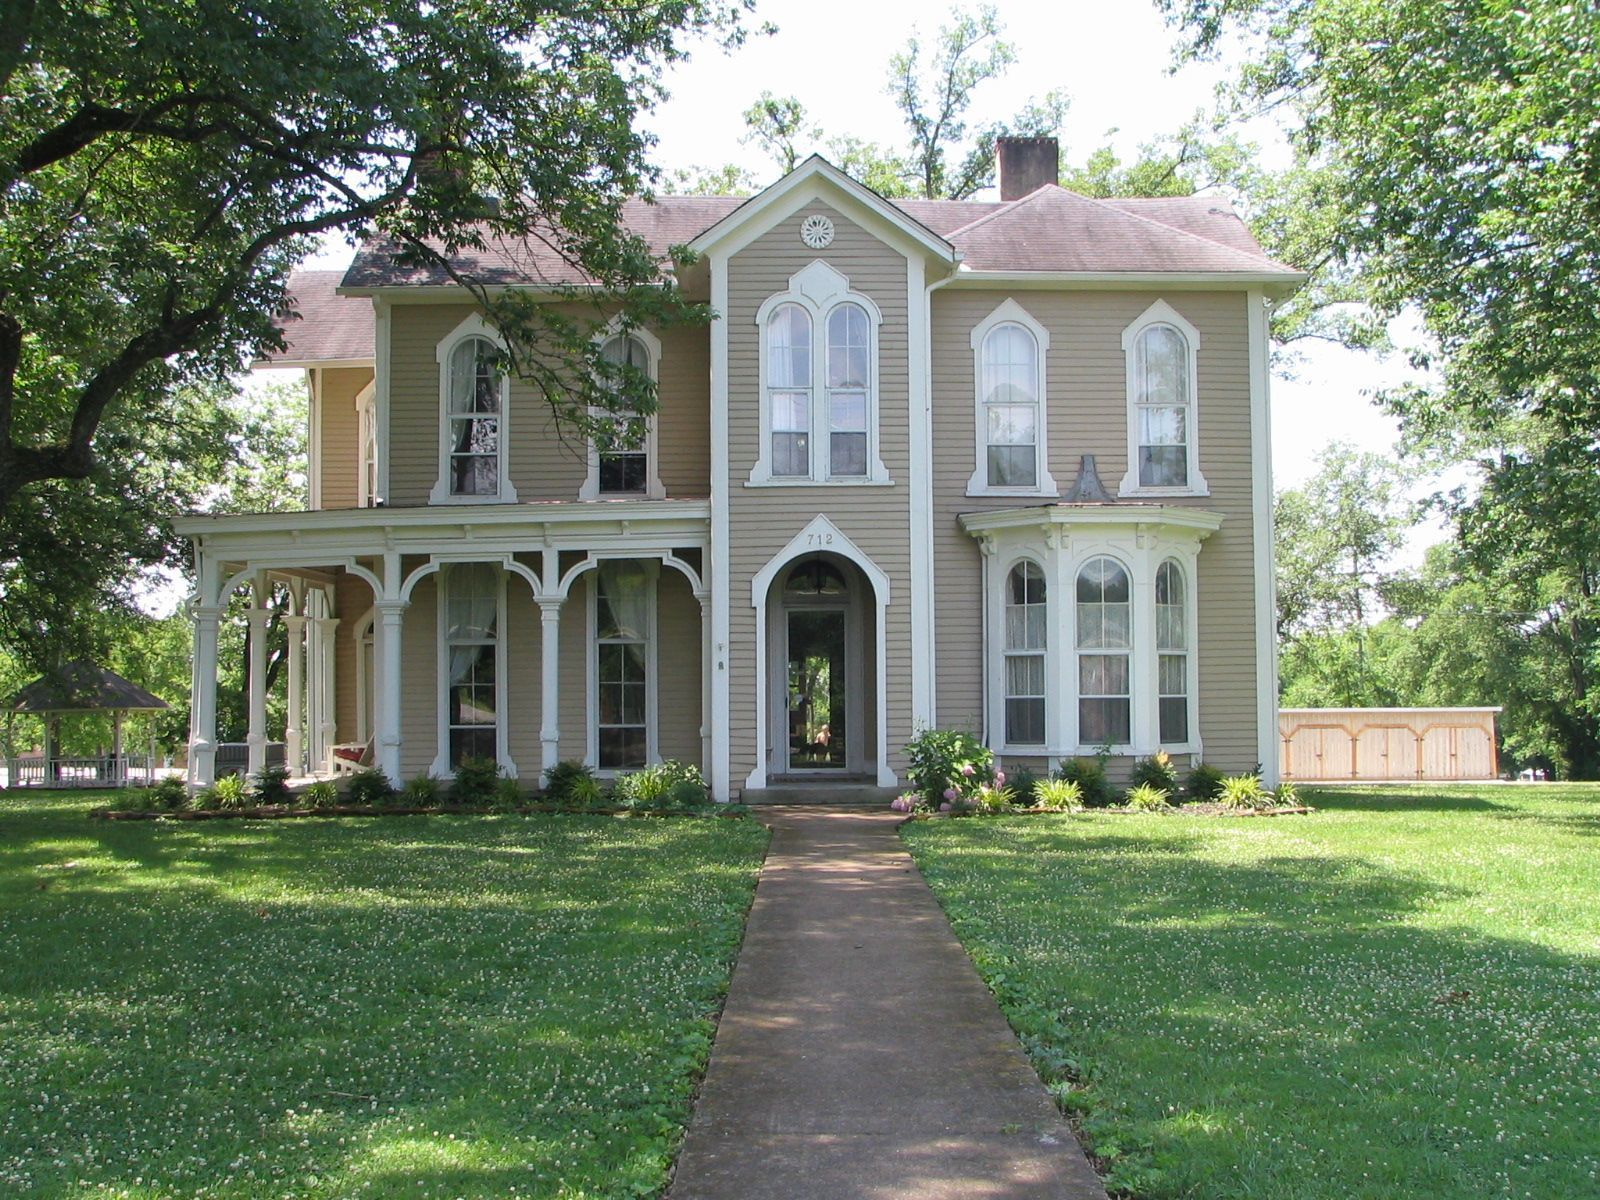 Italianate Farmhouse 1874 Italianate Farmhouse Listed On The National Register Of